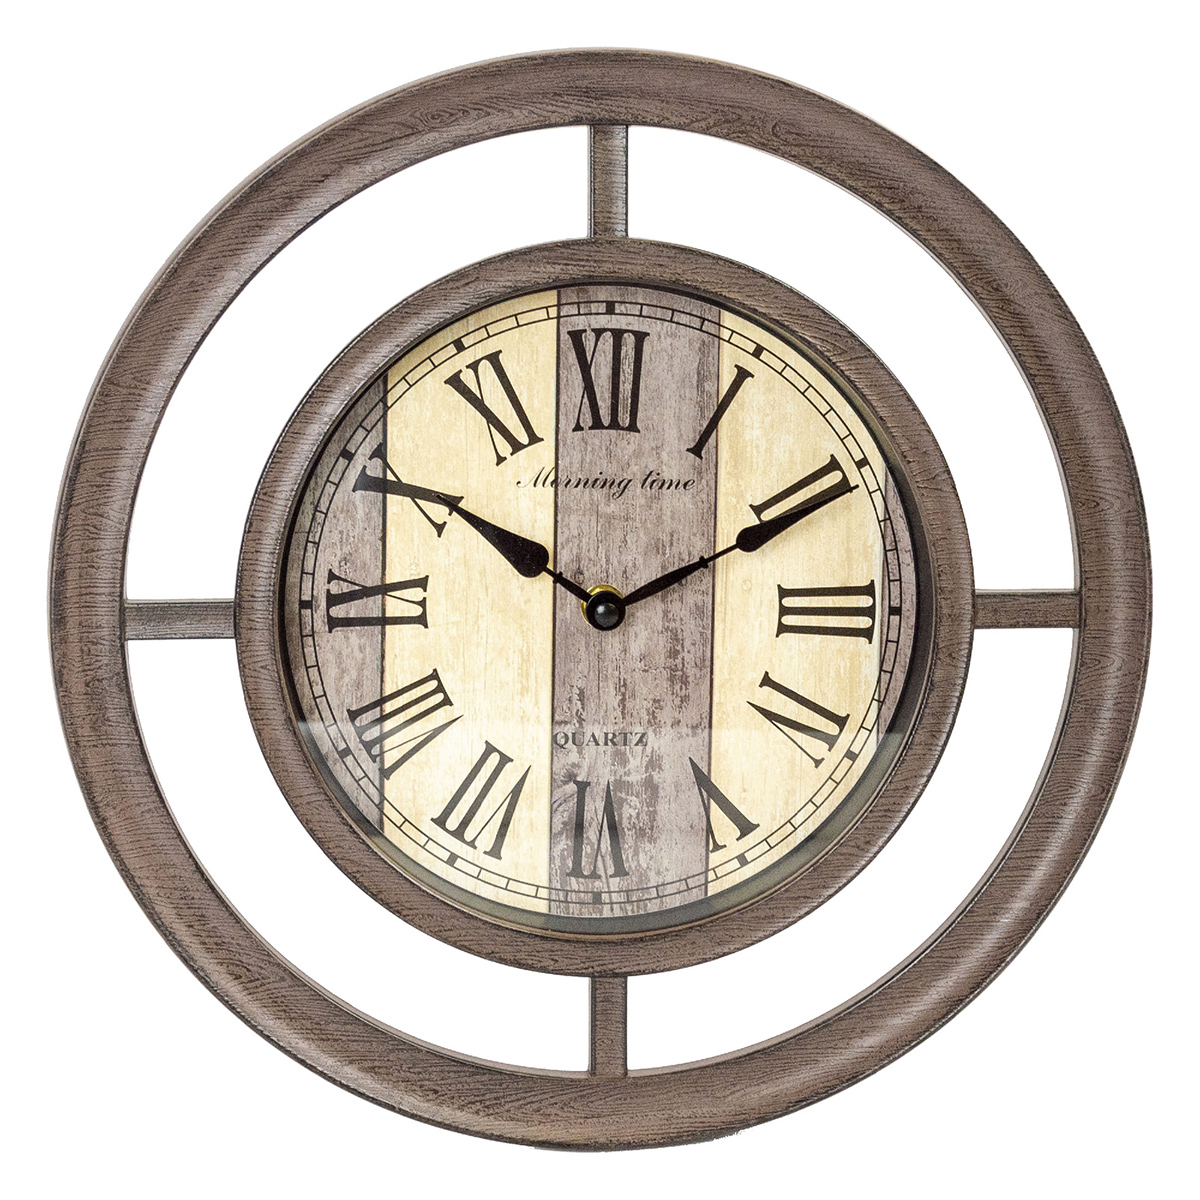 12.5 inch Wood Circle Wall Clock